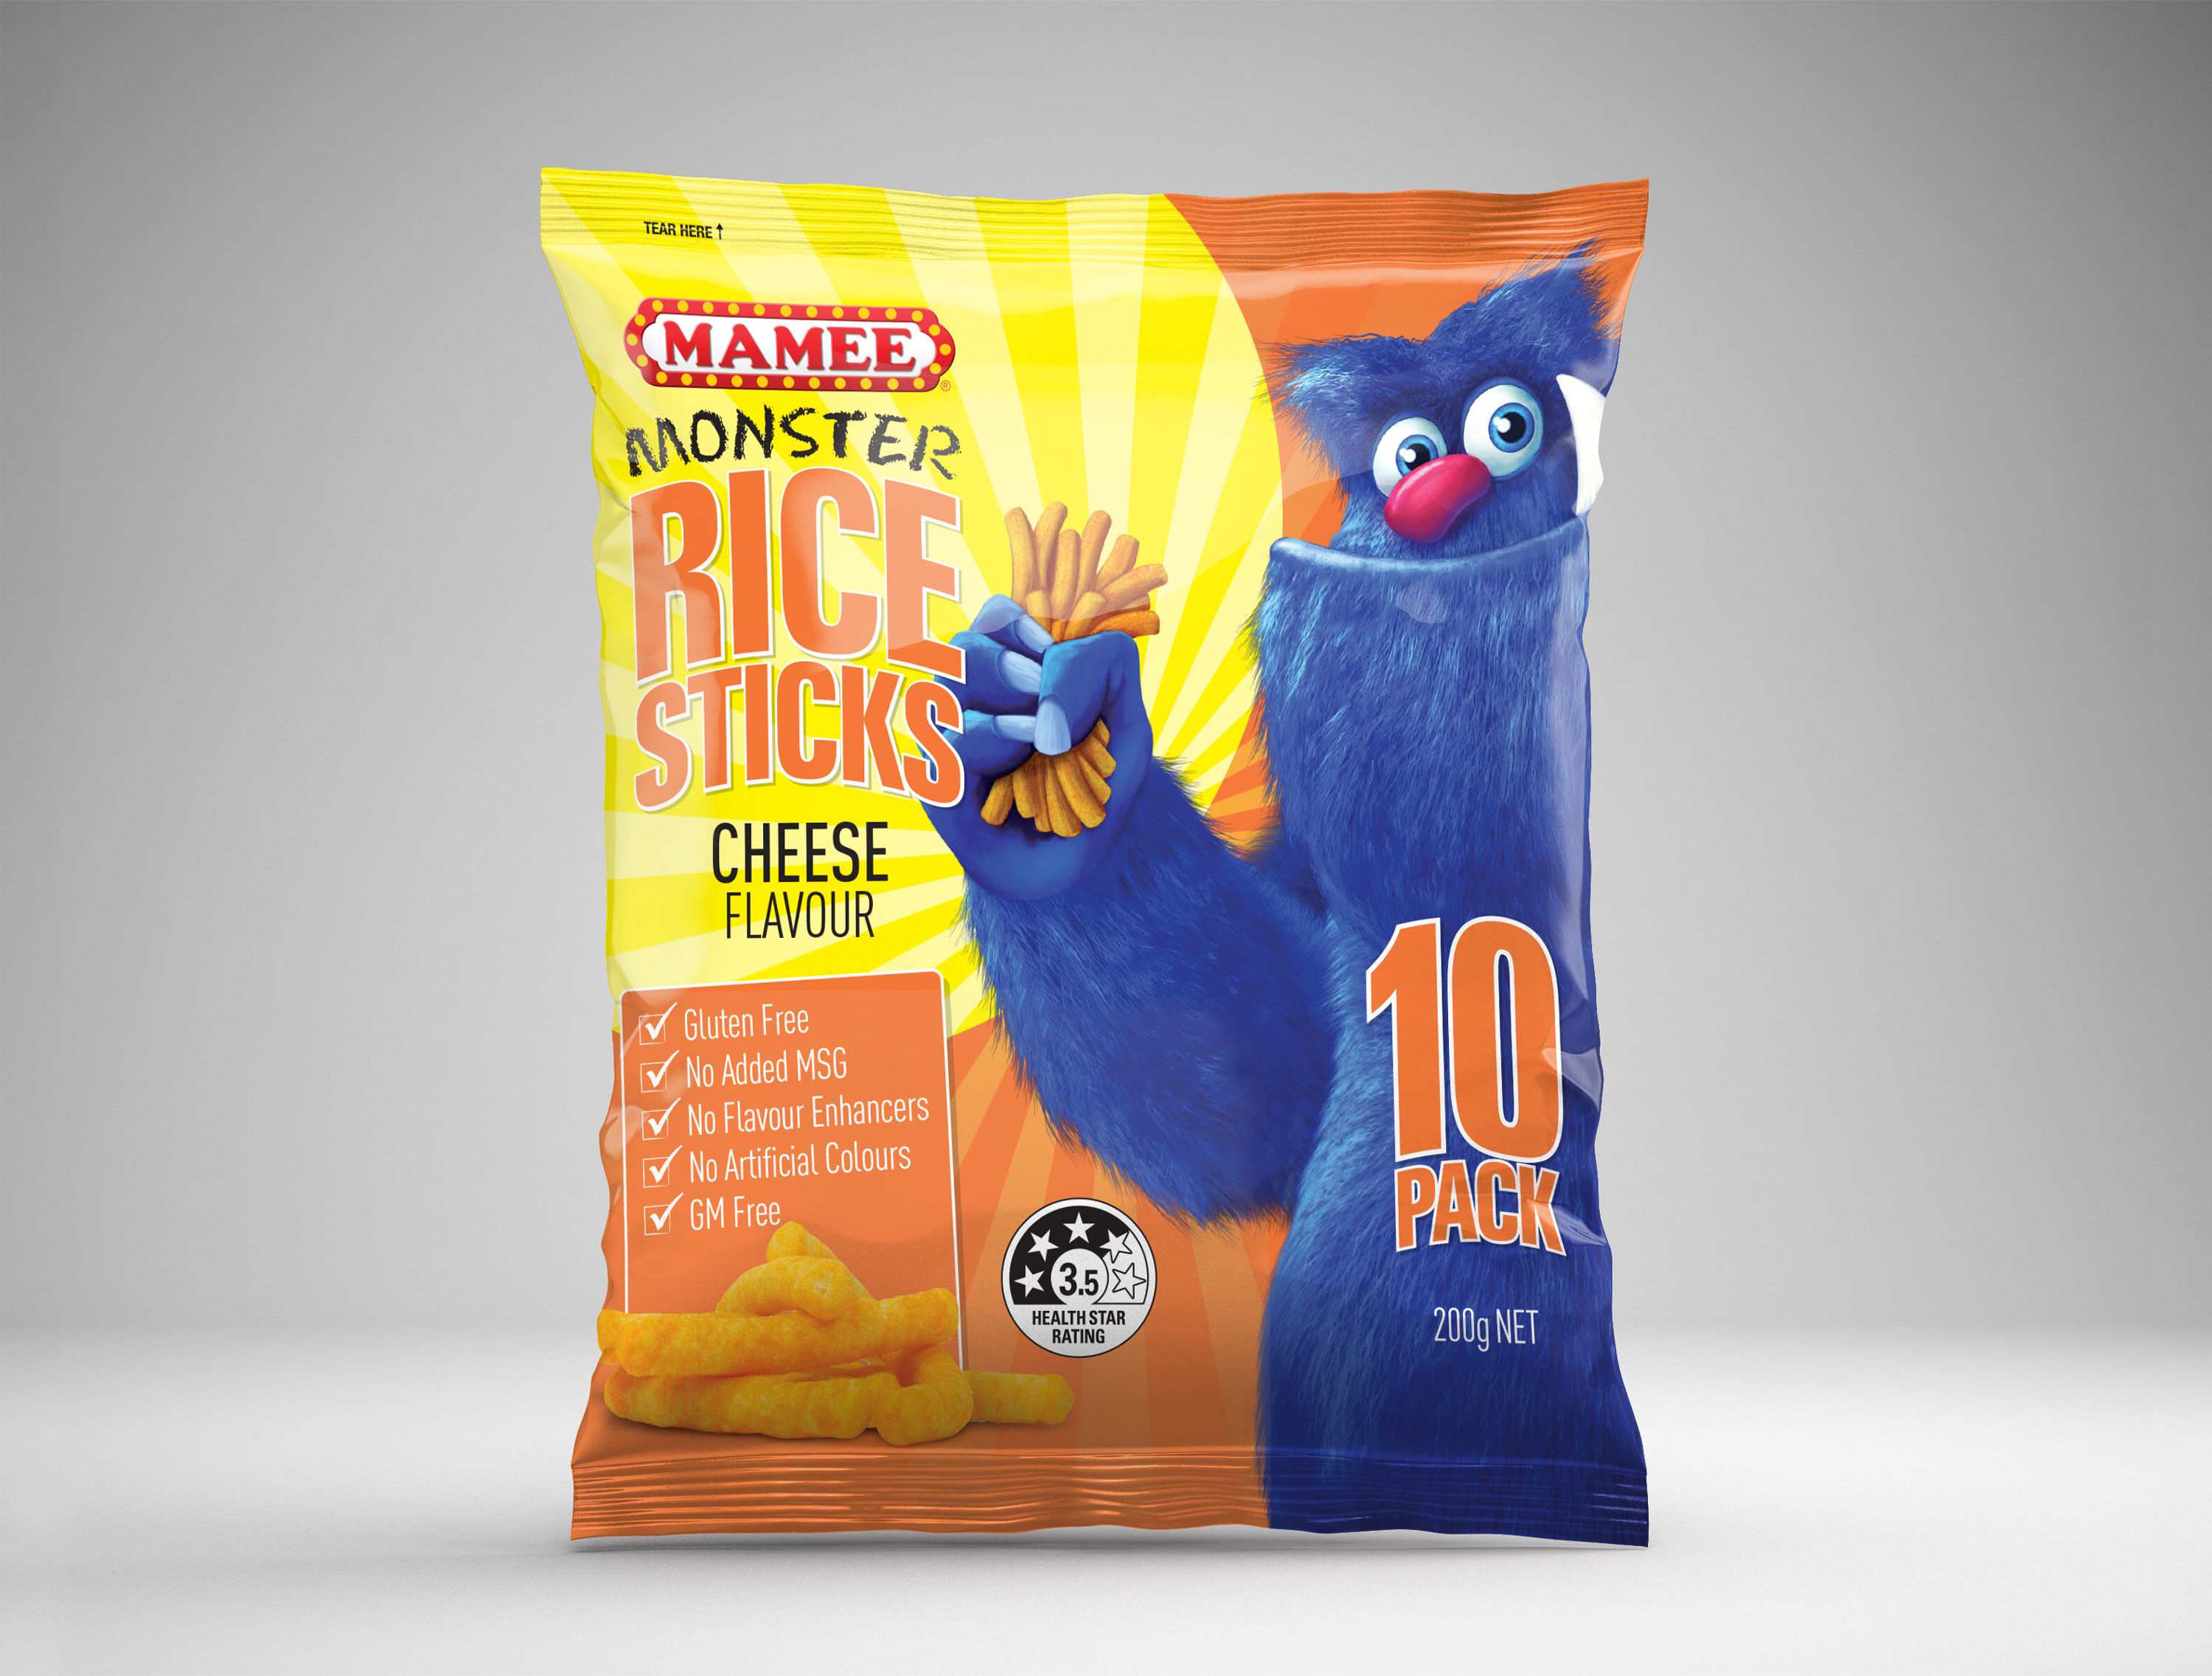 Mamee Rice Sticks Packaging Design